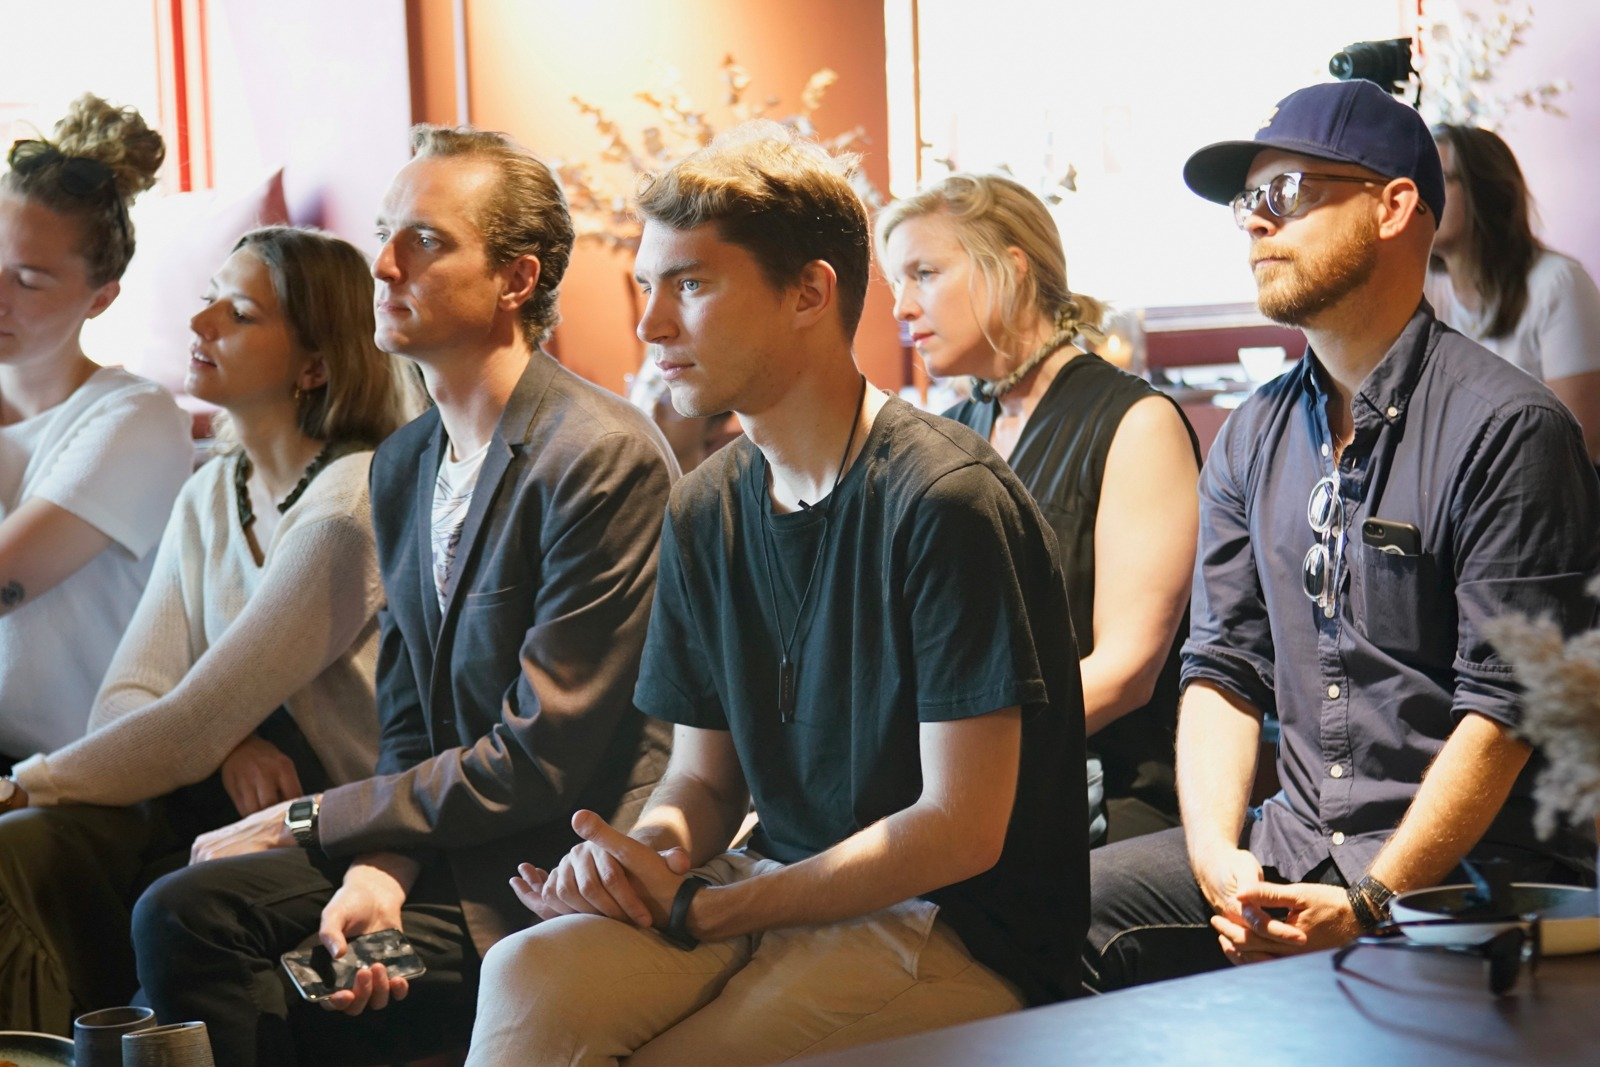 Event photography: Spectators at Creative Mornings Cph - shot with Lomography Neptune